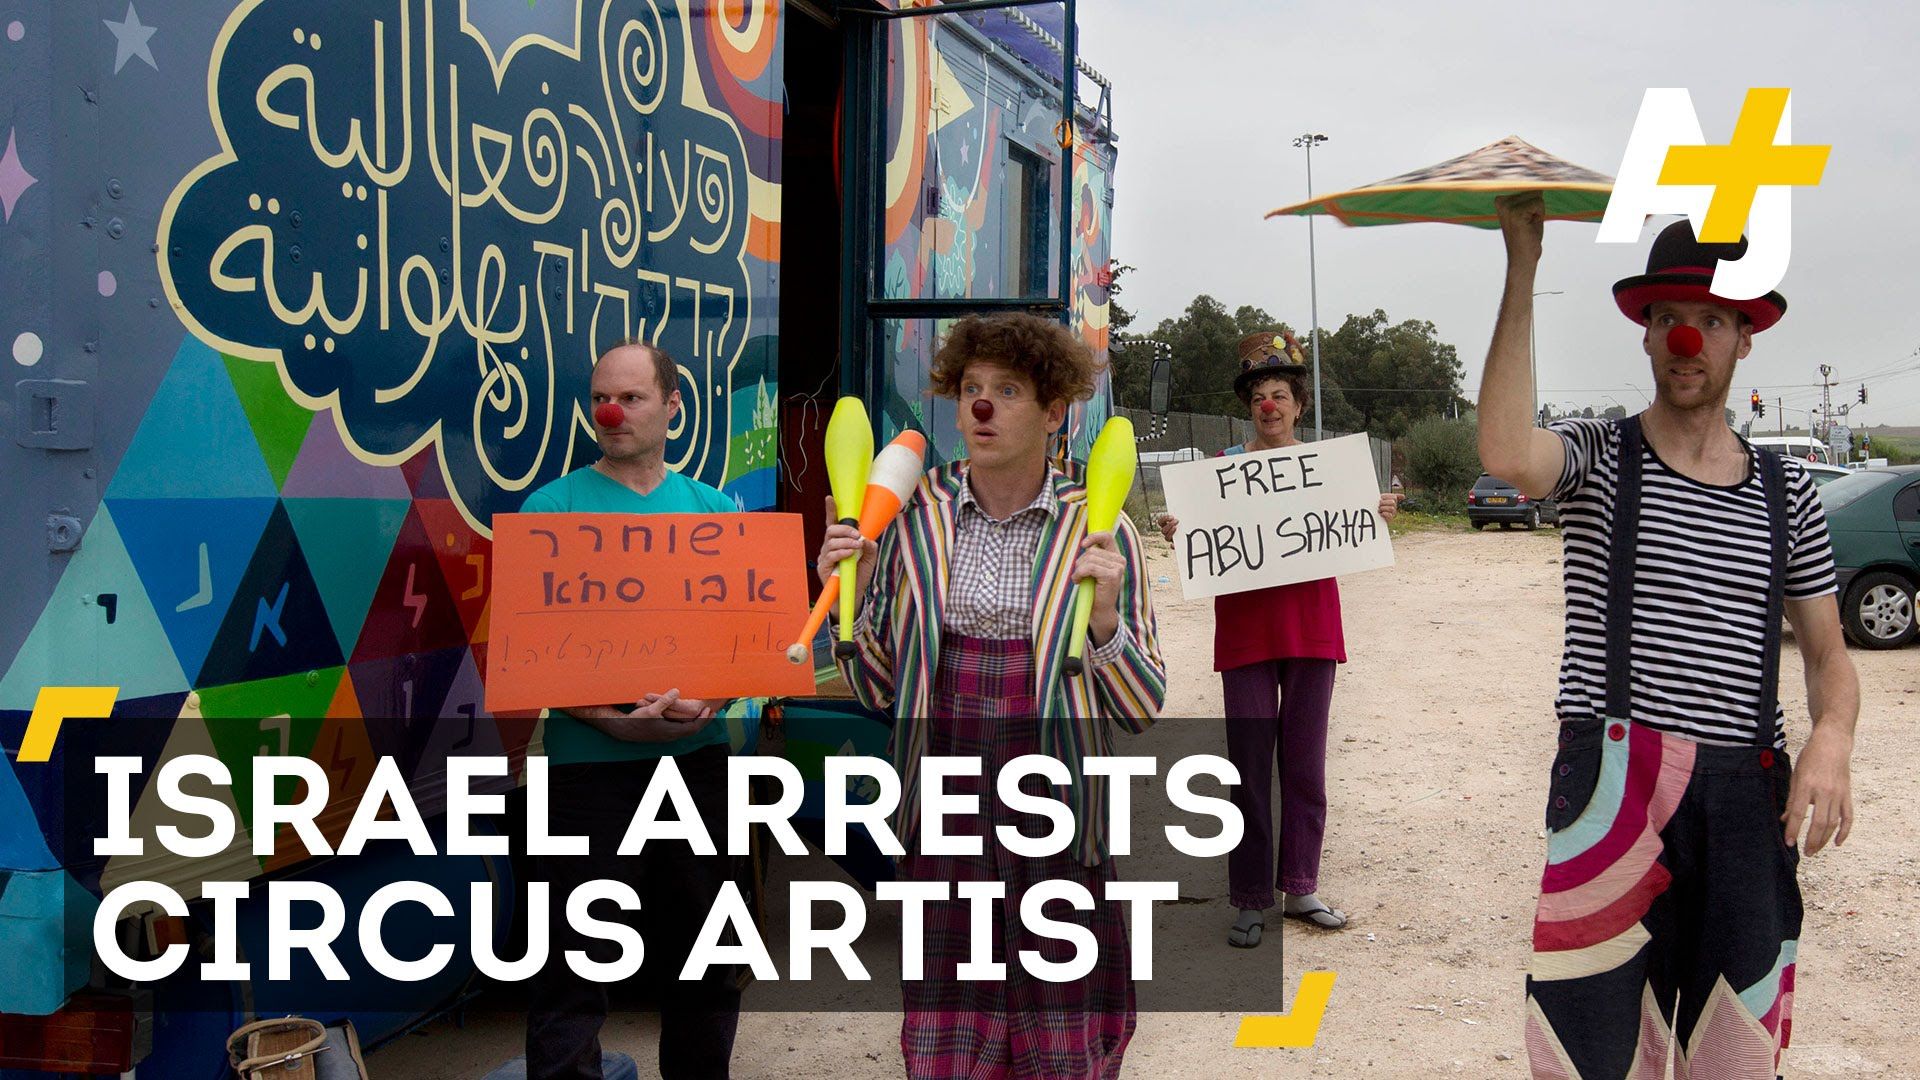 Palestinian Clown Detained By Israel